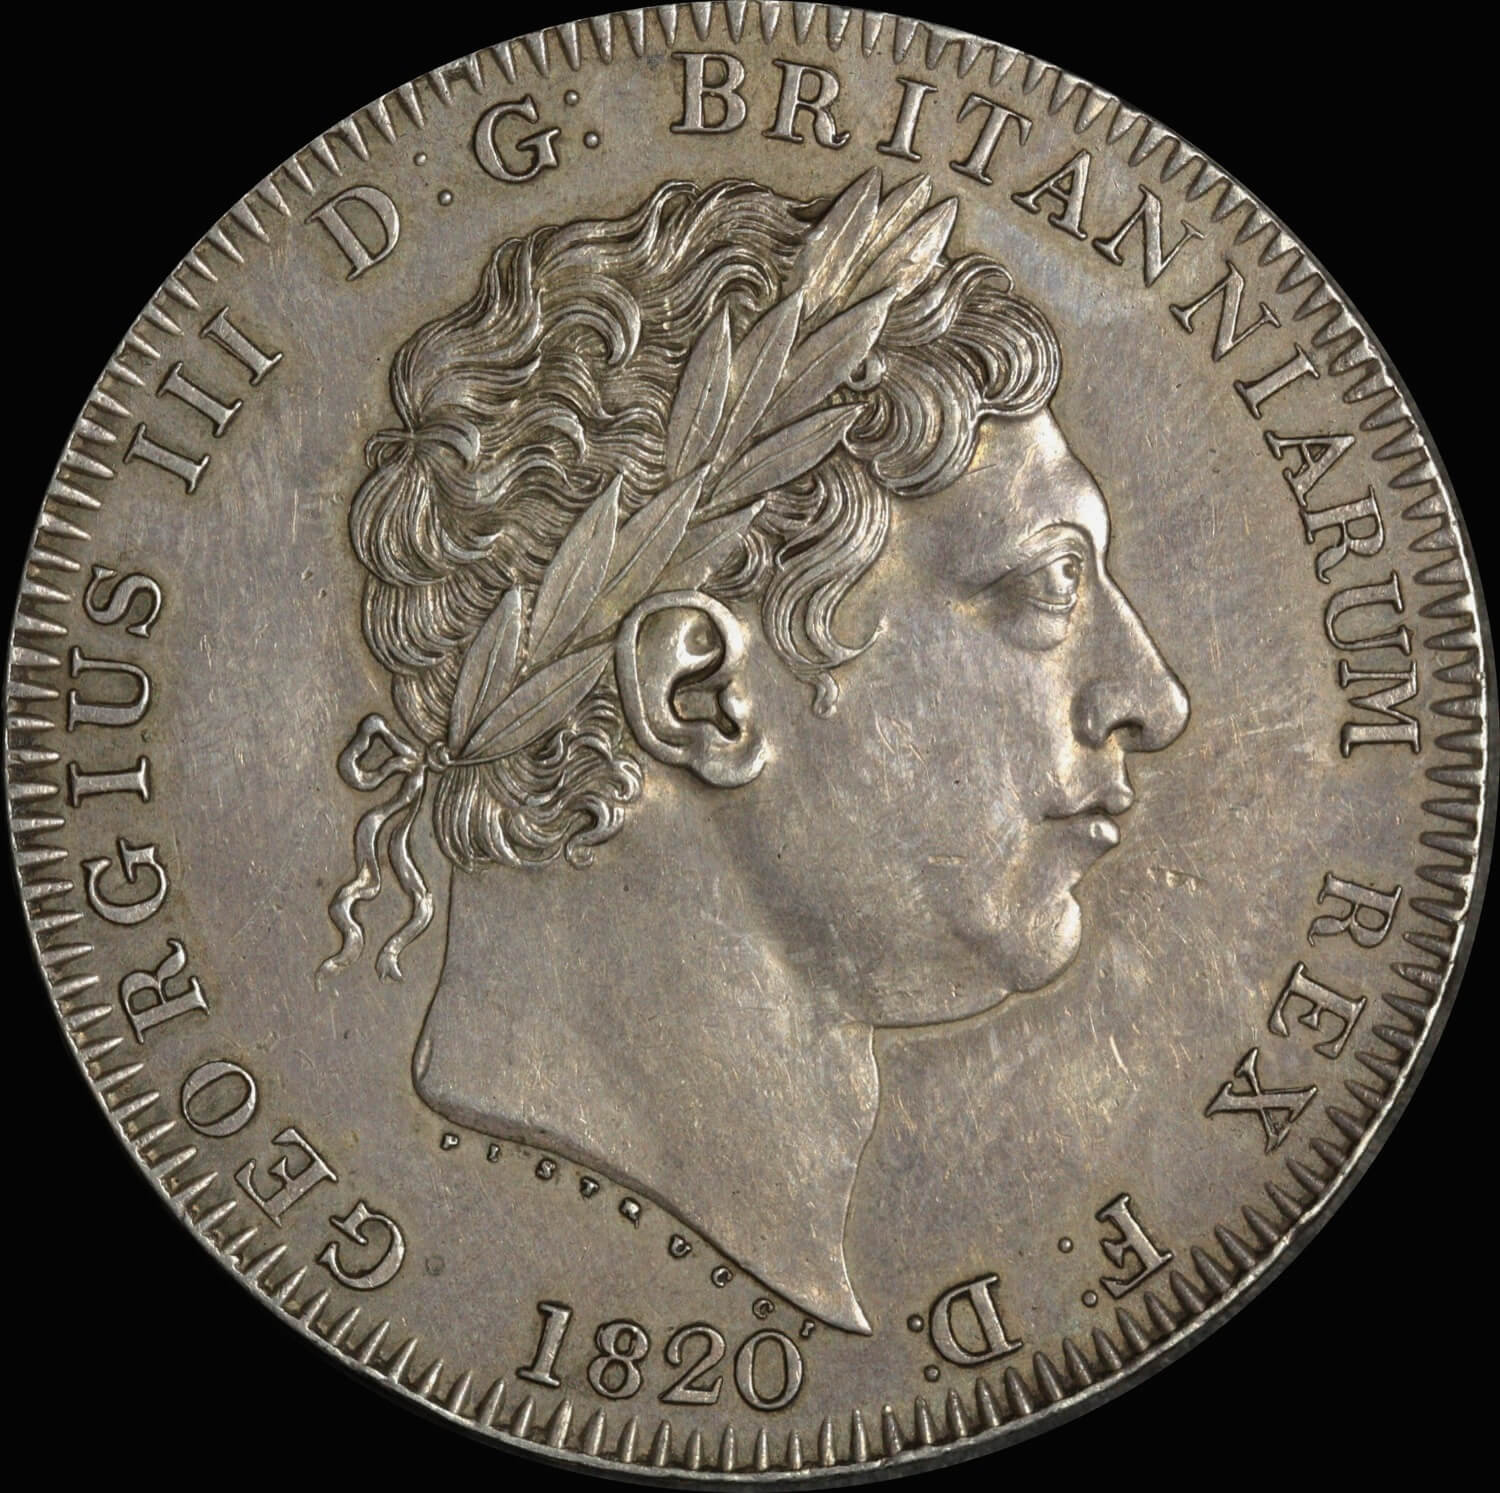 1820 Great Britain George III Lx Silver Crown S#3787 Extremely Fine (PCGS AU50) product image